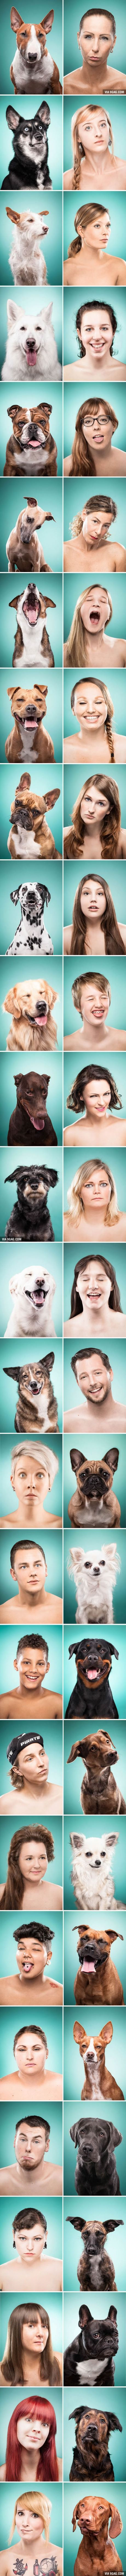 Photographer Captures Dog Owners Mimicking Their Best Friends And It's So Cute!: